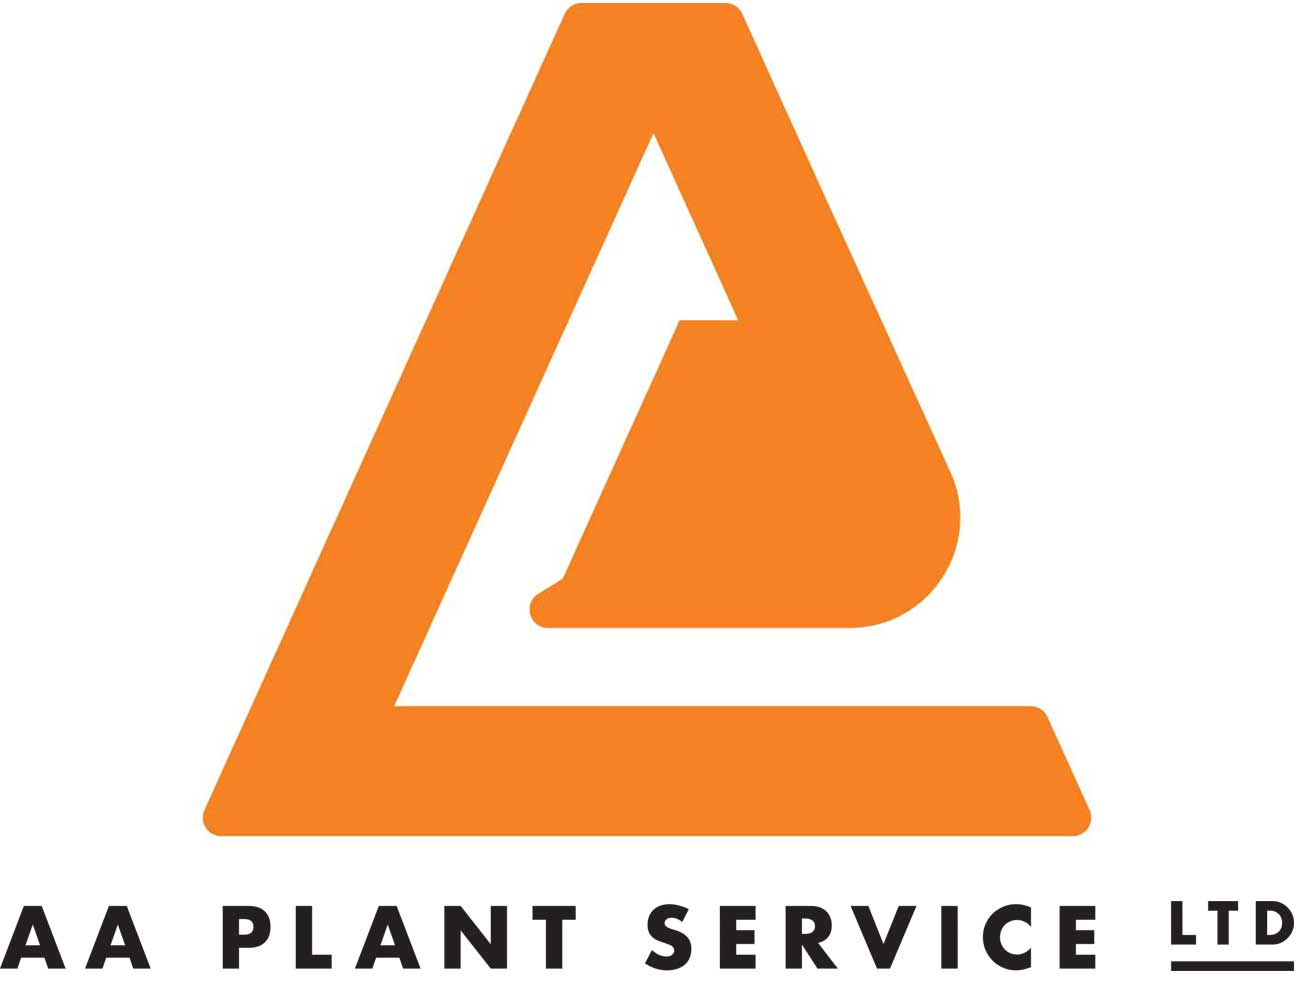 AA Plant Service